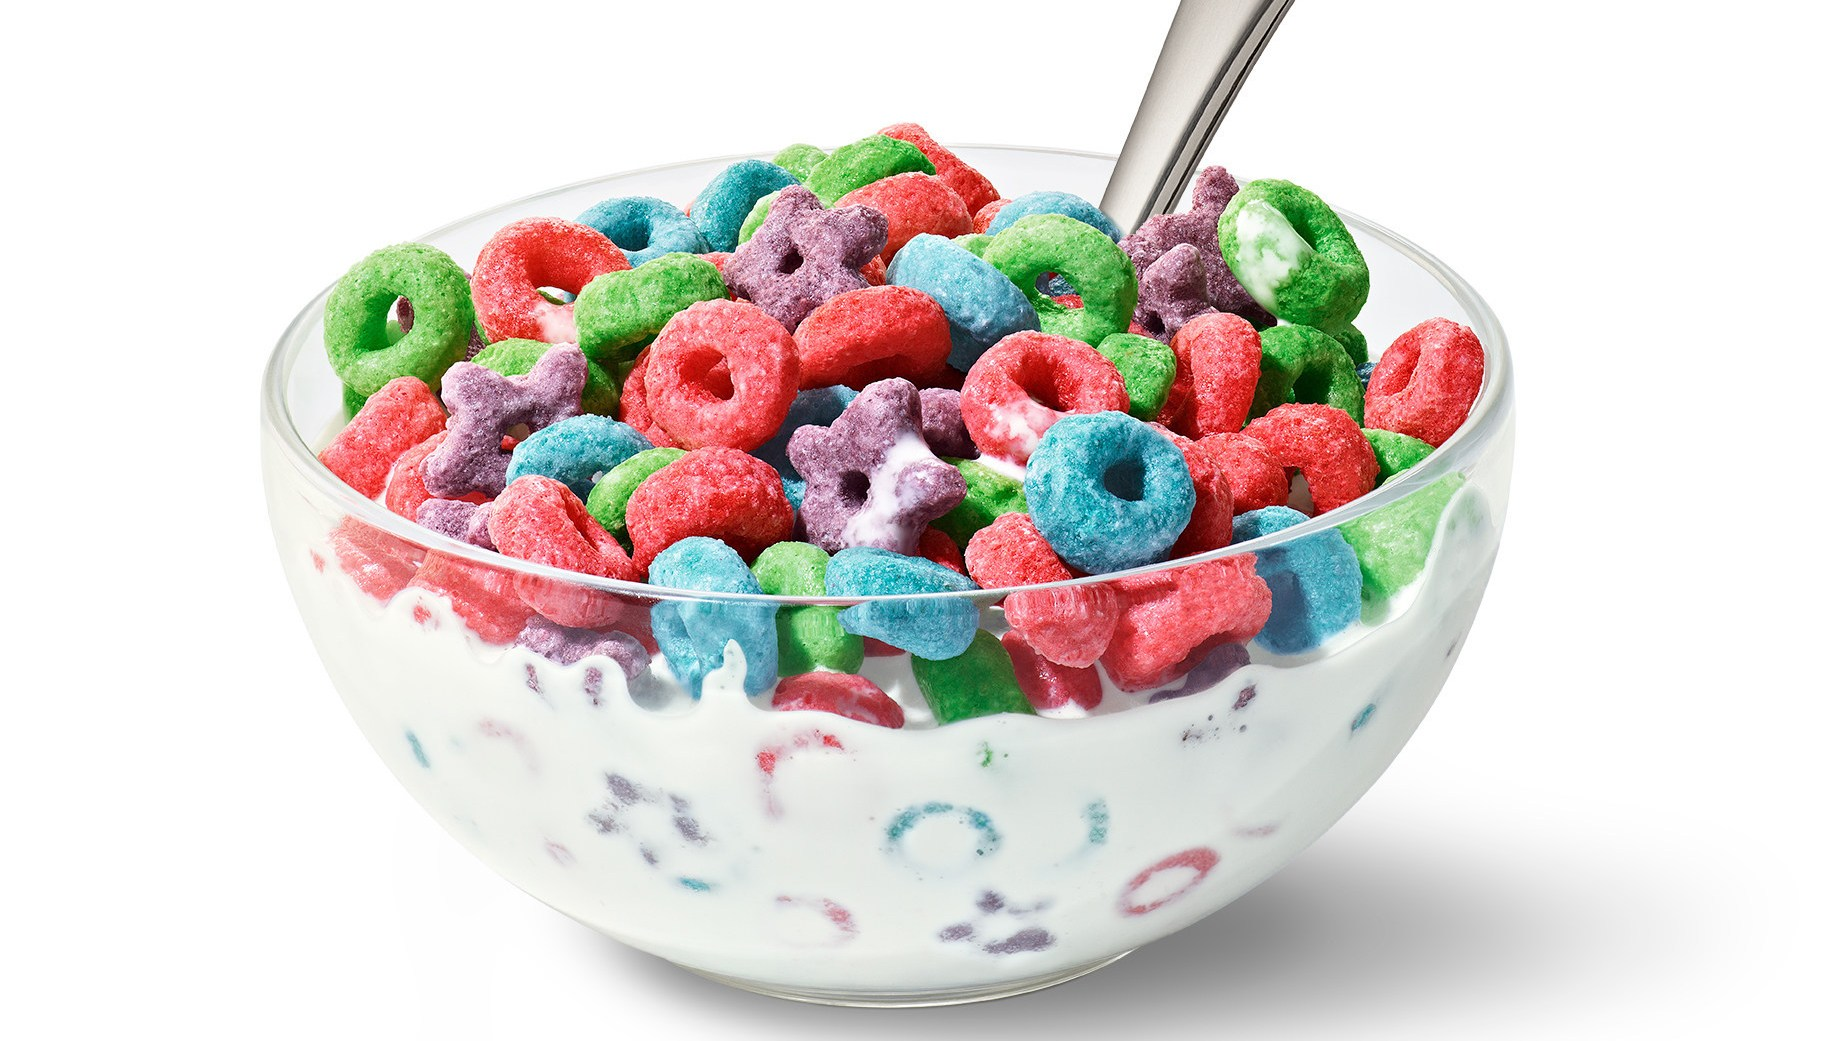 Kellogg's New Mermaid Froot Loops Are Completely Different Colors, But They're Only Available Here